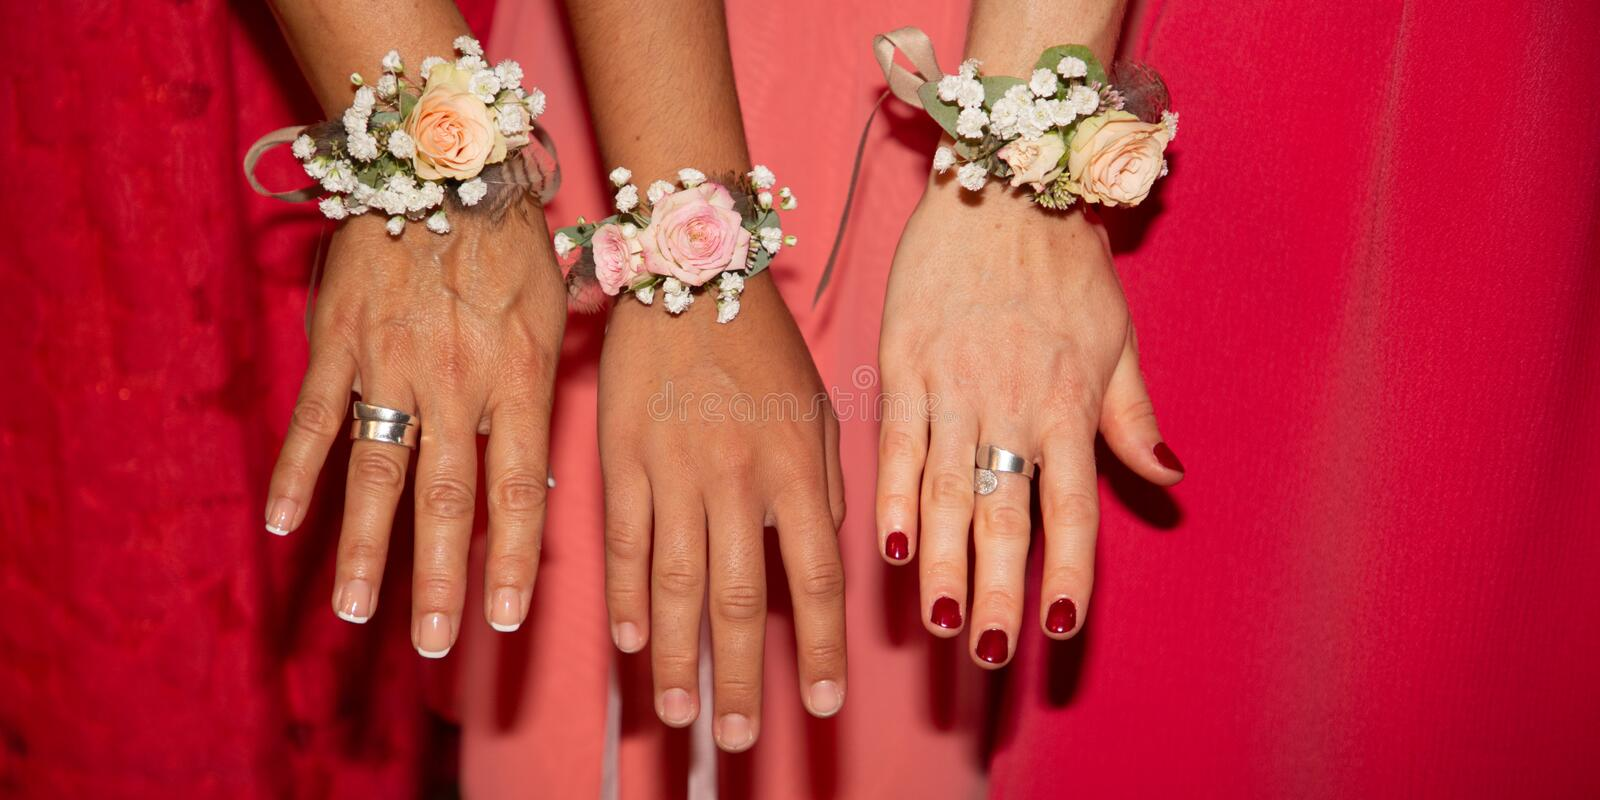 Bride bridesmaids with red pink dress and flowers bracelets on hands in web banner template banner royalty free stock photo